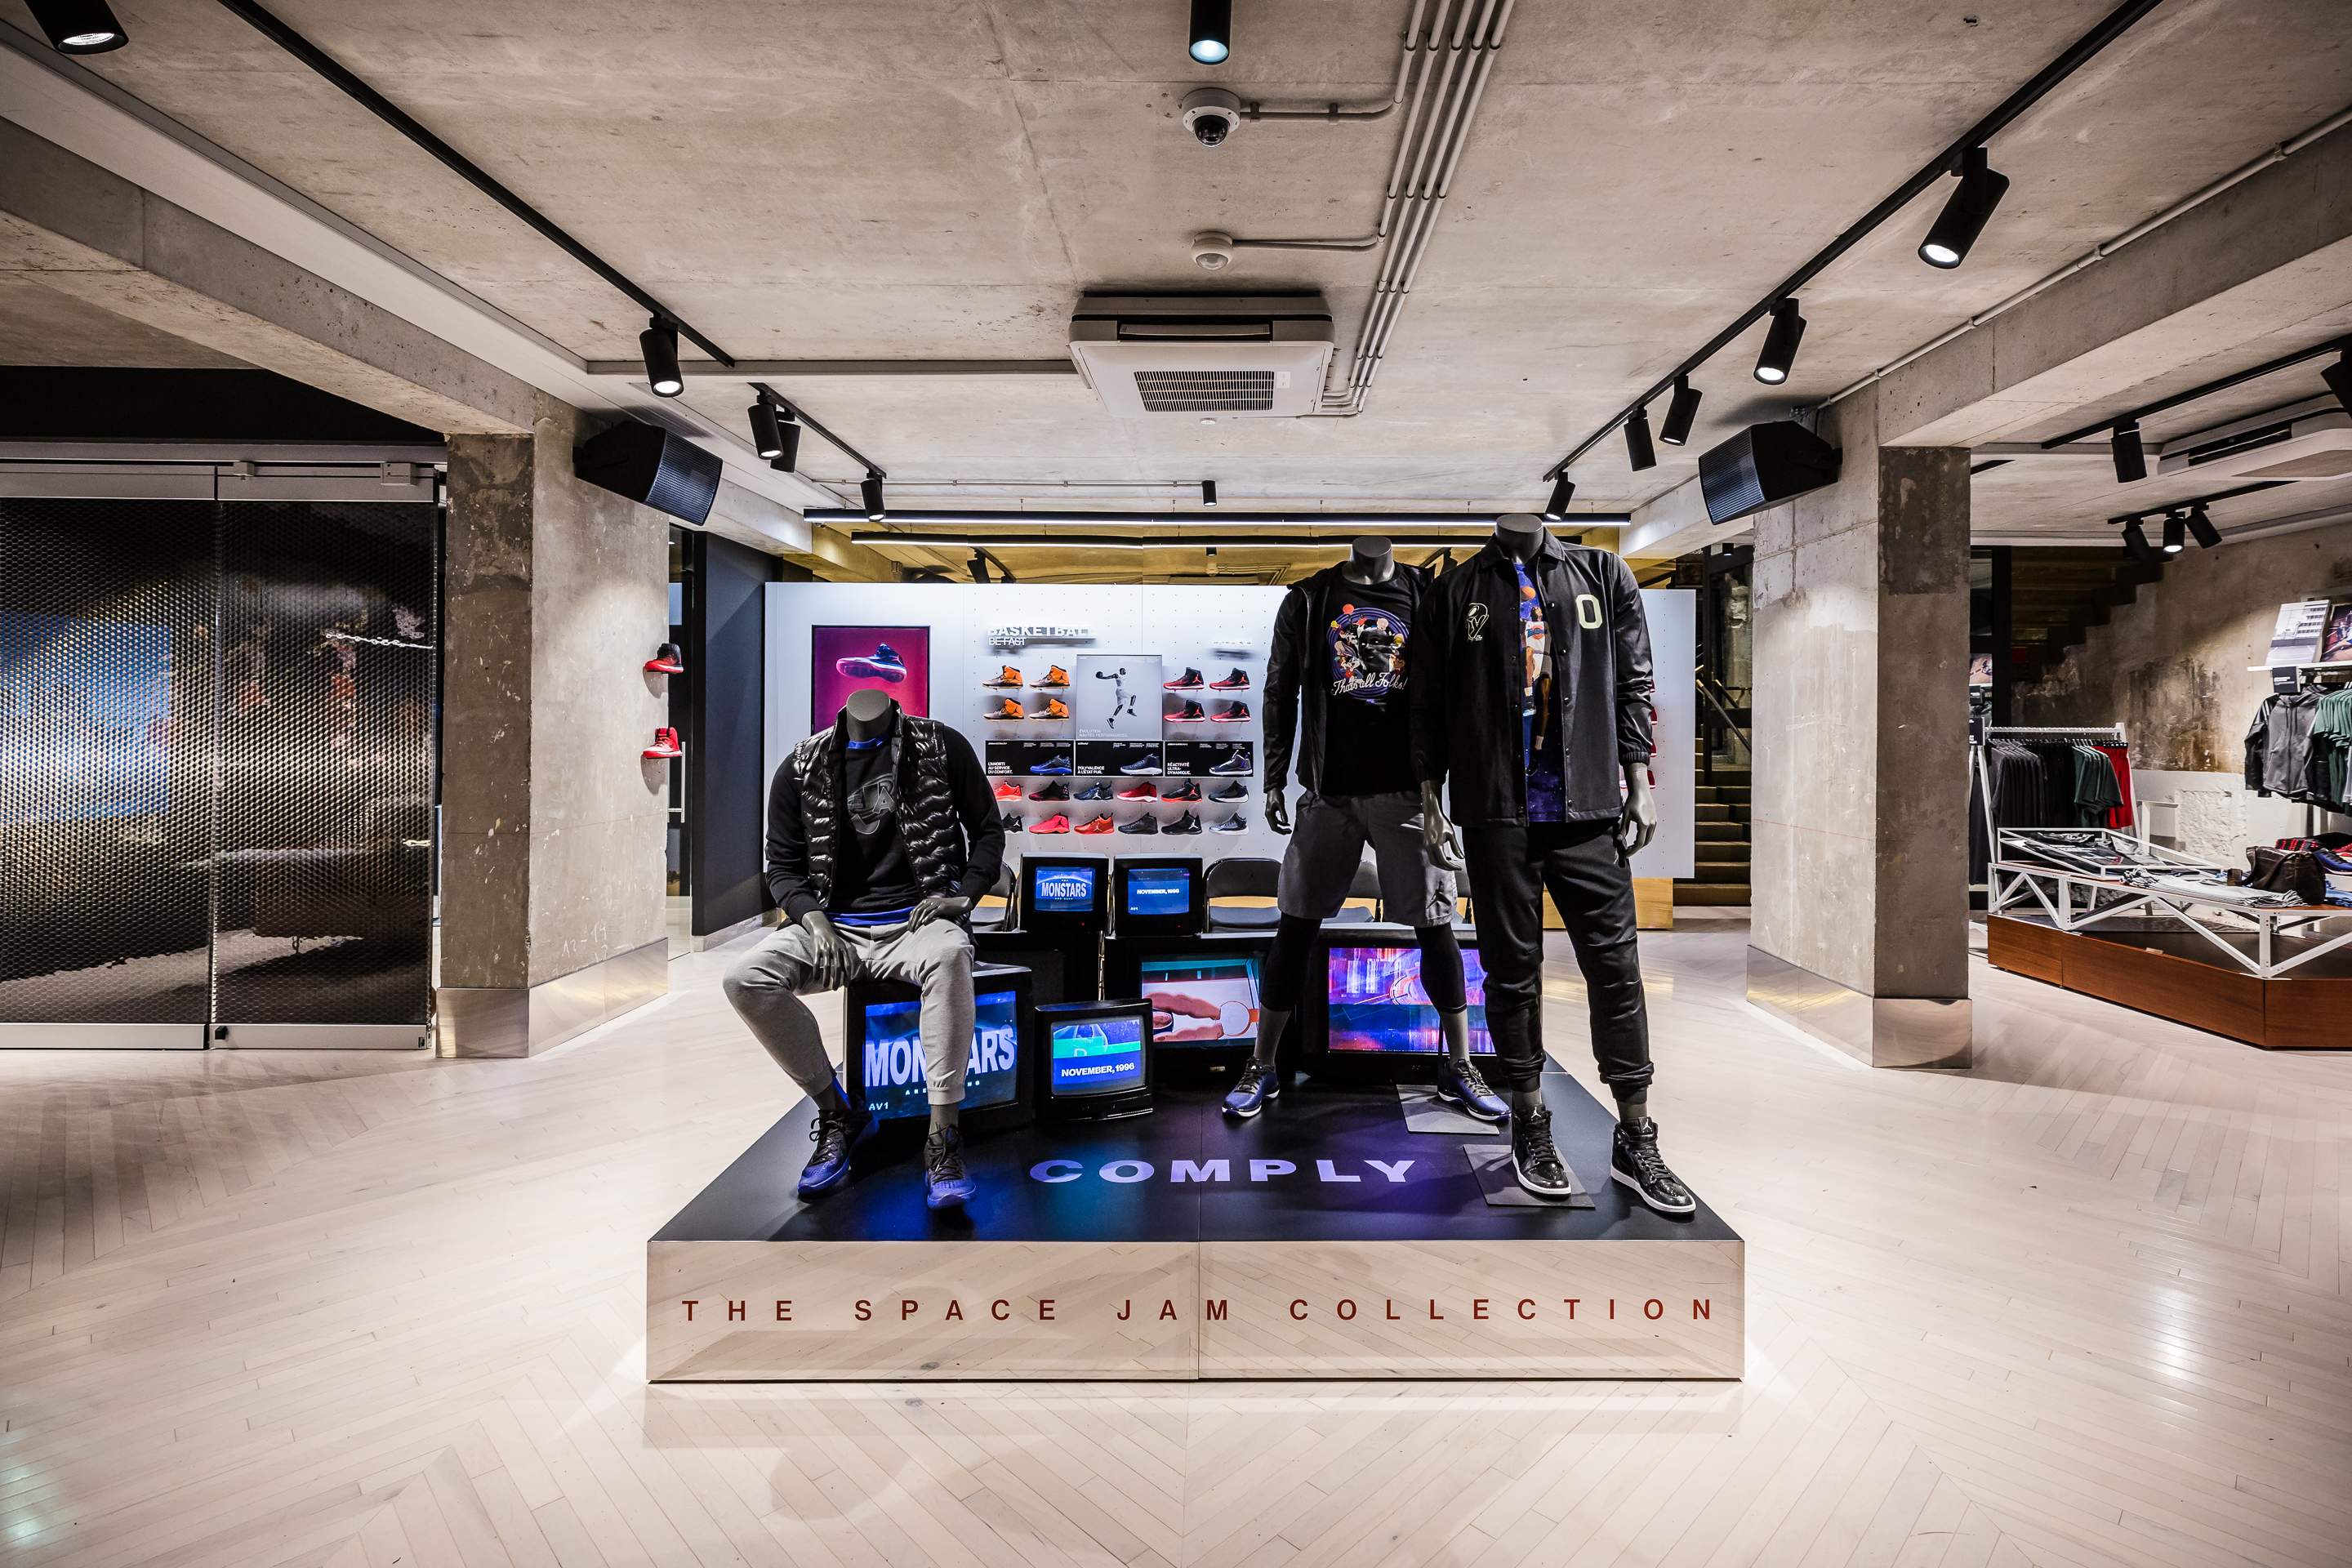 air jordan paris store